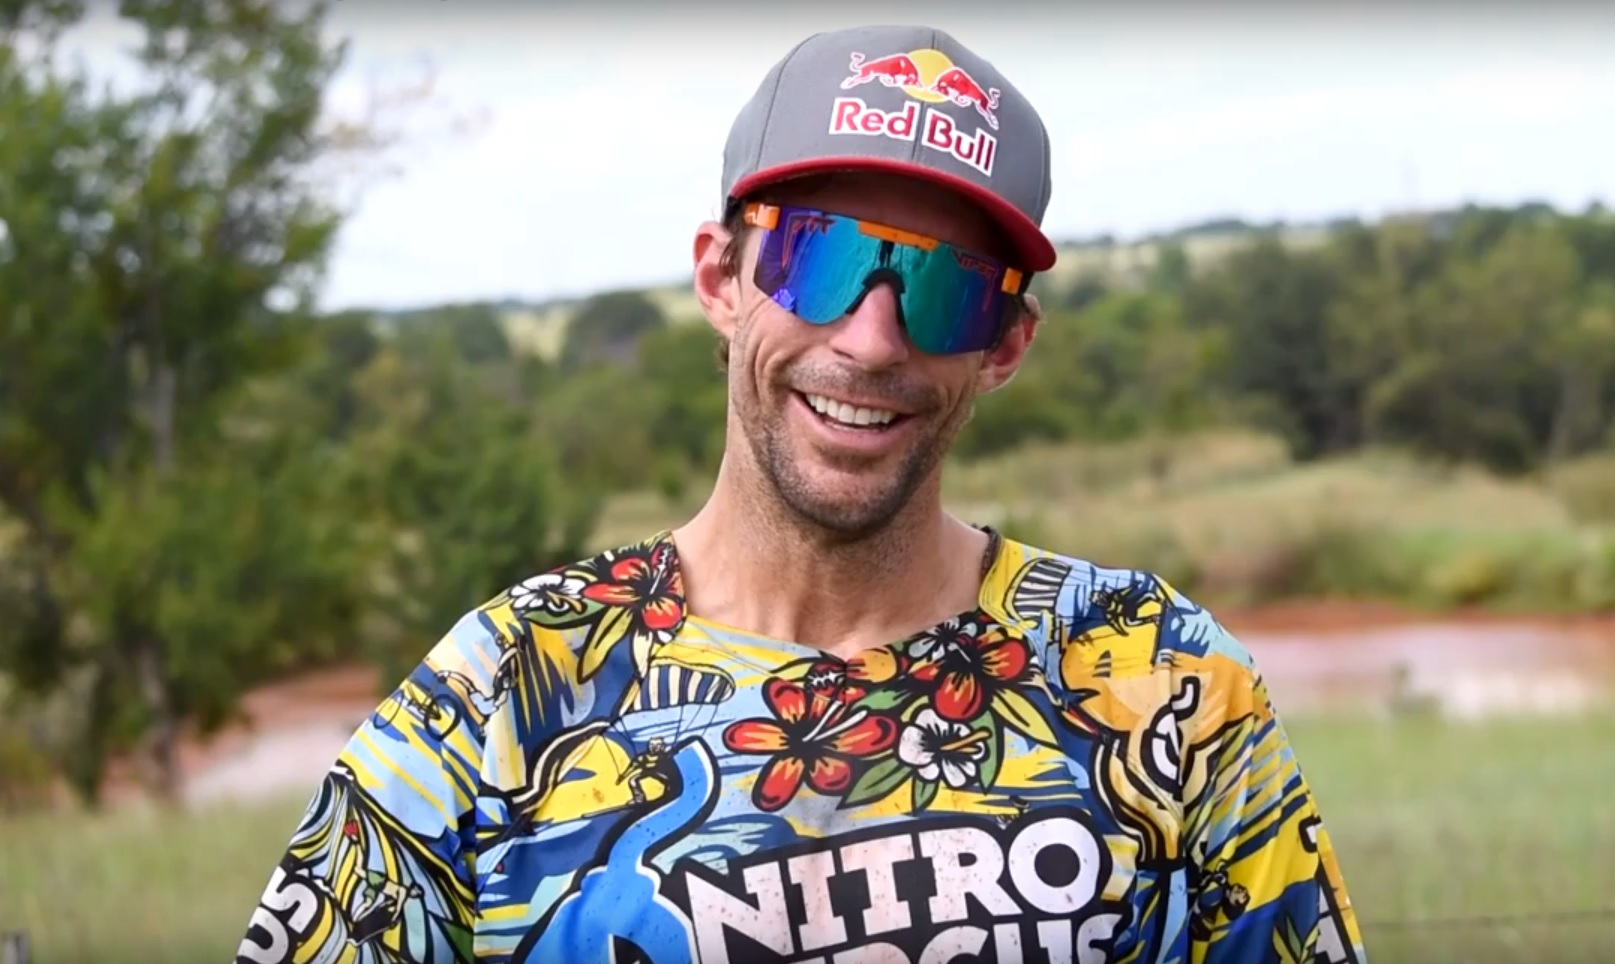 VIDEO: TRAVIS PASTRANA AT HSBK RACING TRAINING FOR MOTOCROSS OF NATIONS